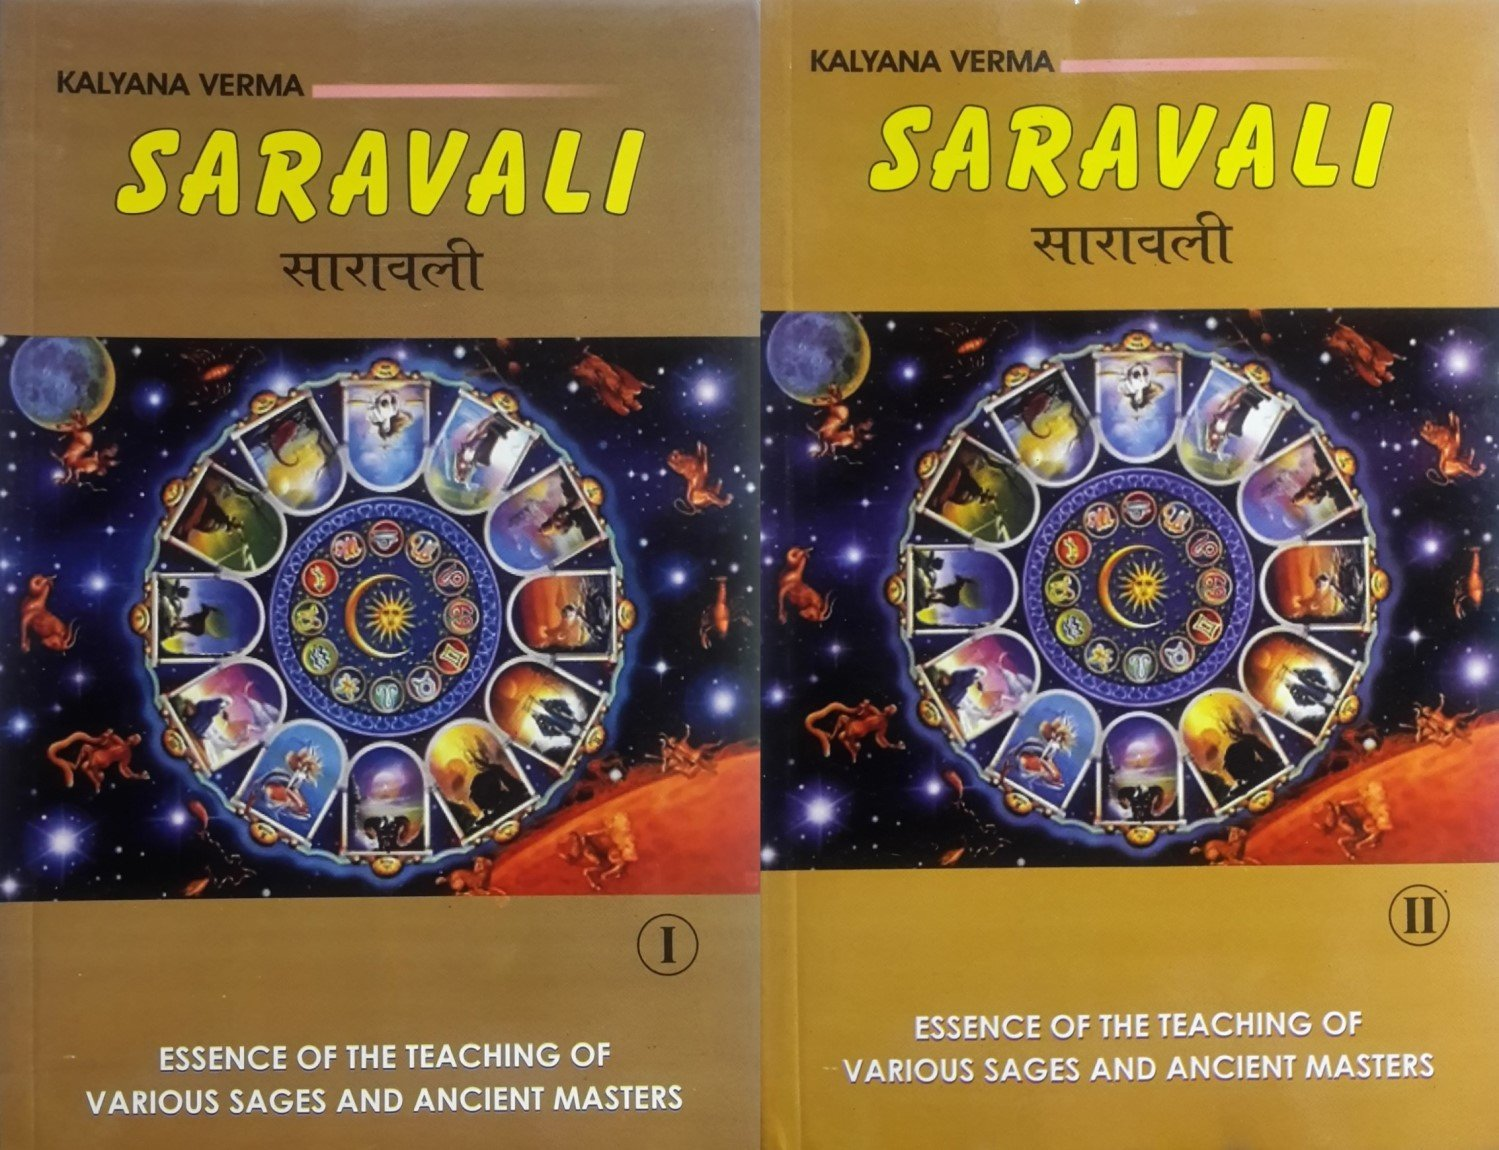 Buy Saravali: Essence of the Teaching of Various Sages and Ancient Masters: Set of 2 Volumes Book Online at Low Prices in India | Saravali: Essence of the Teaching of Various Sages